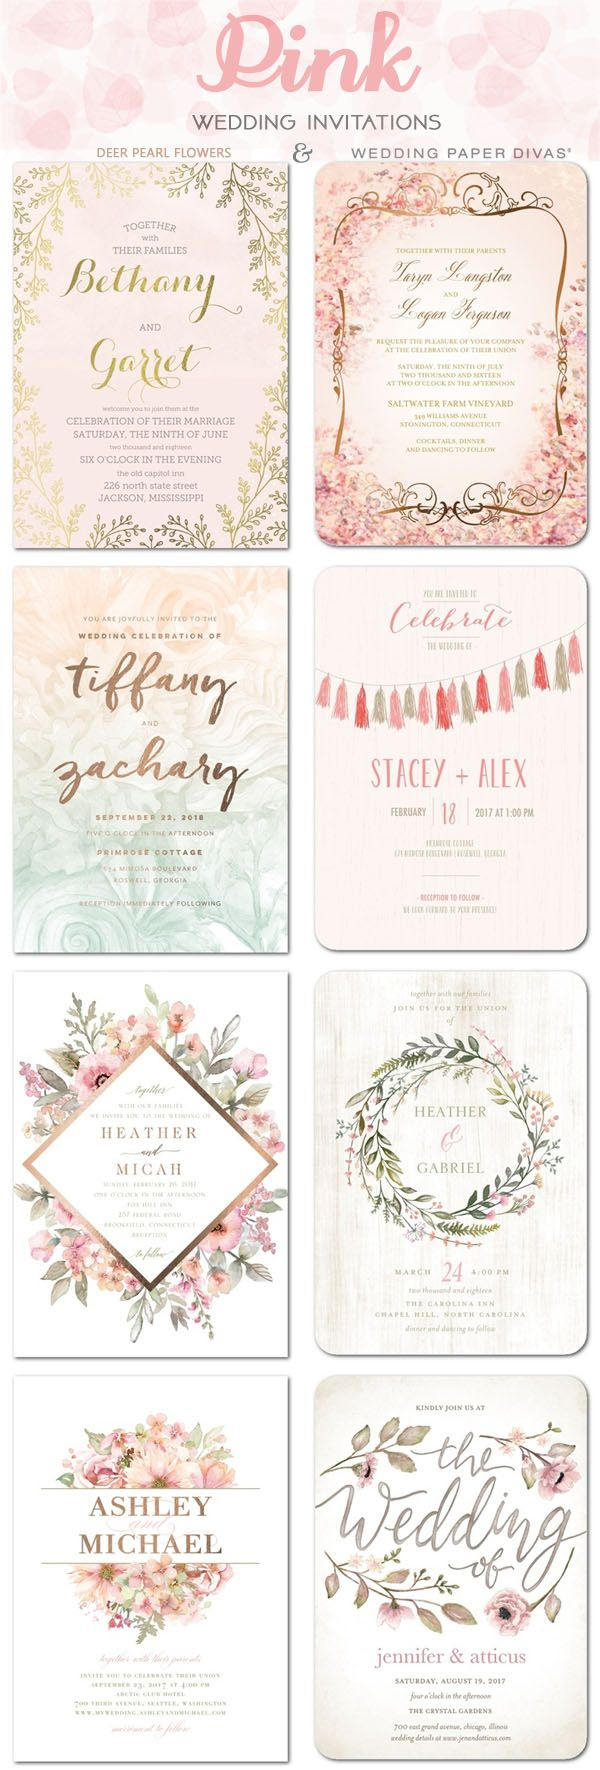 Top 8 Themed Shutterfly Wedding Invitations